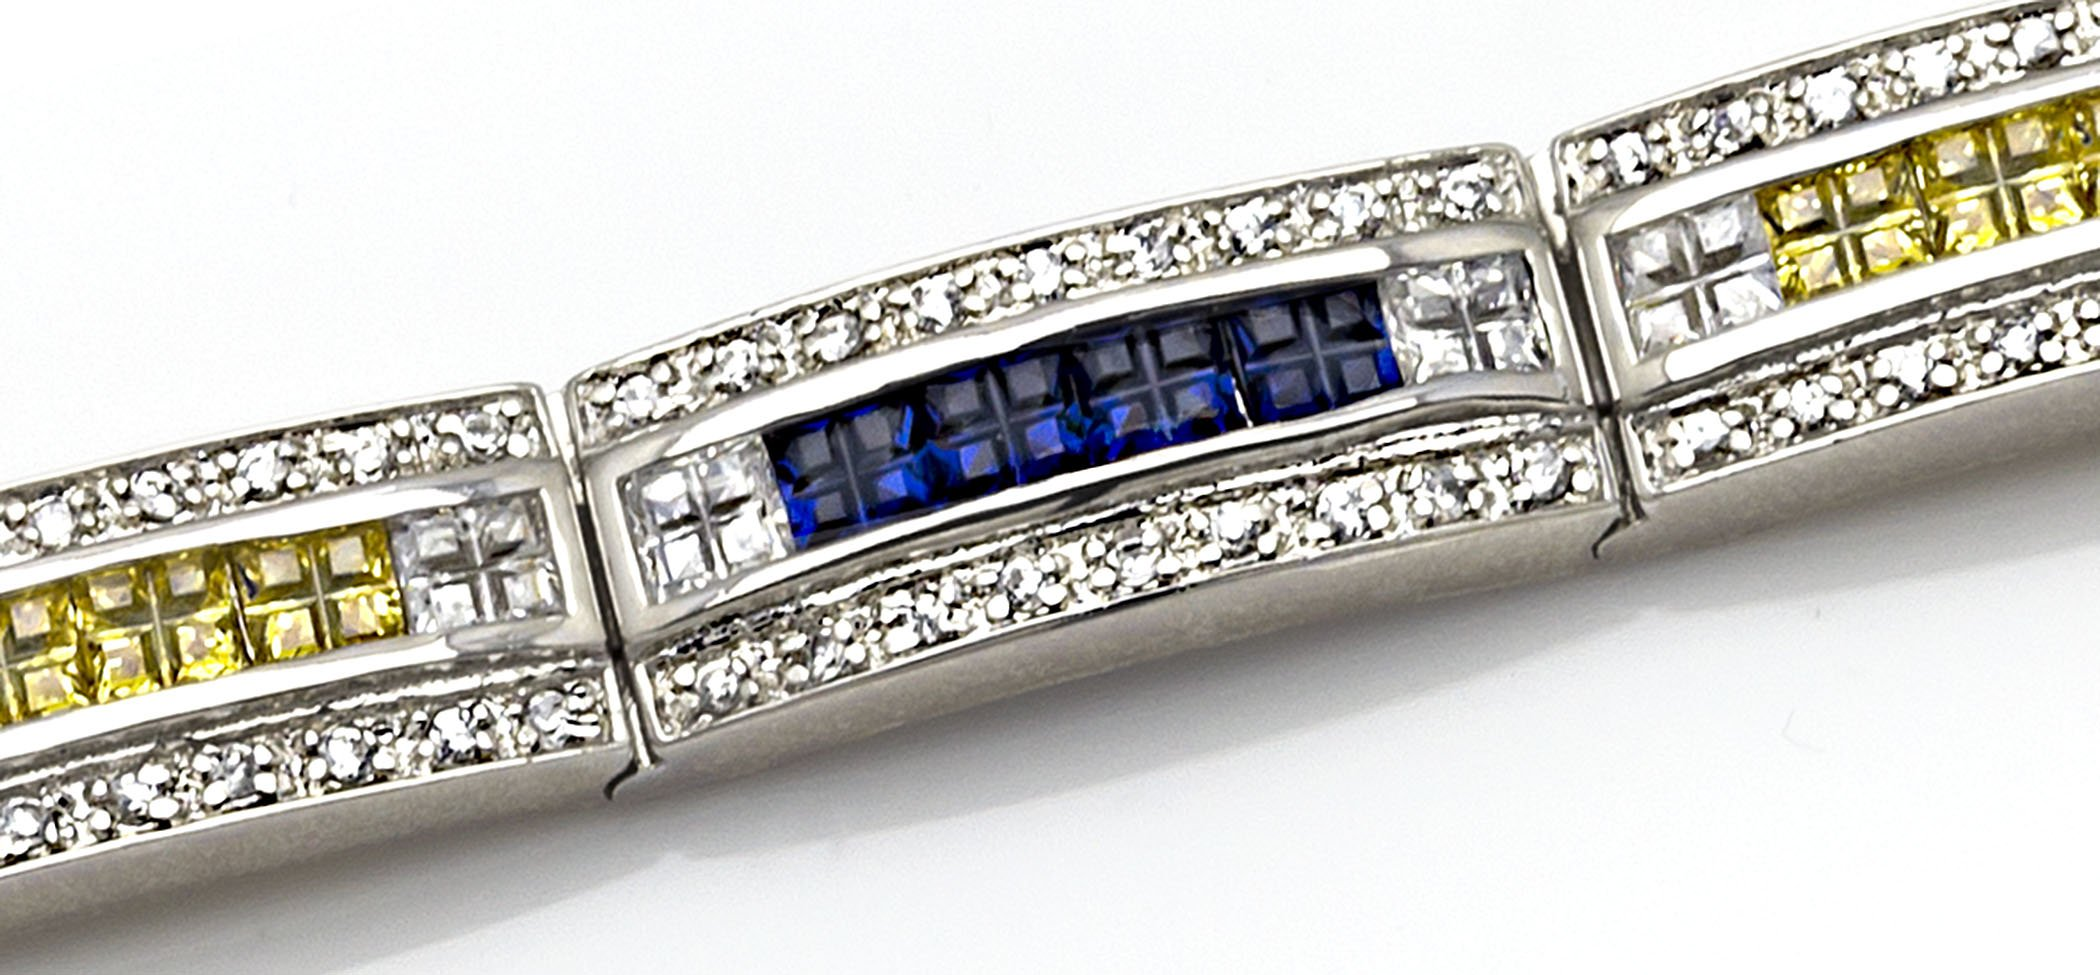 Men's Sterling Silver .925 Bracelet with Canary Yellow, Azure Blue and White Cubic Zirconia (CZ) Stones, Box Lock, Platinum Plated. 8'' or 9'' By Sterling Manufacturers by Sterling Manufacturers (Image #5)